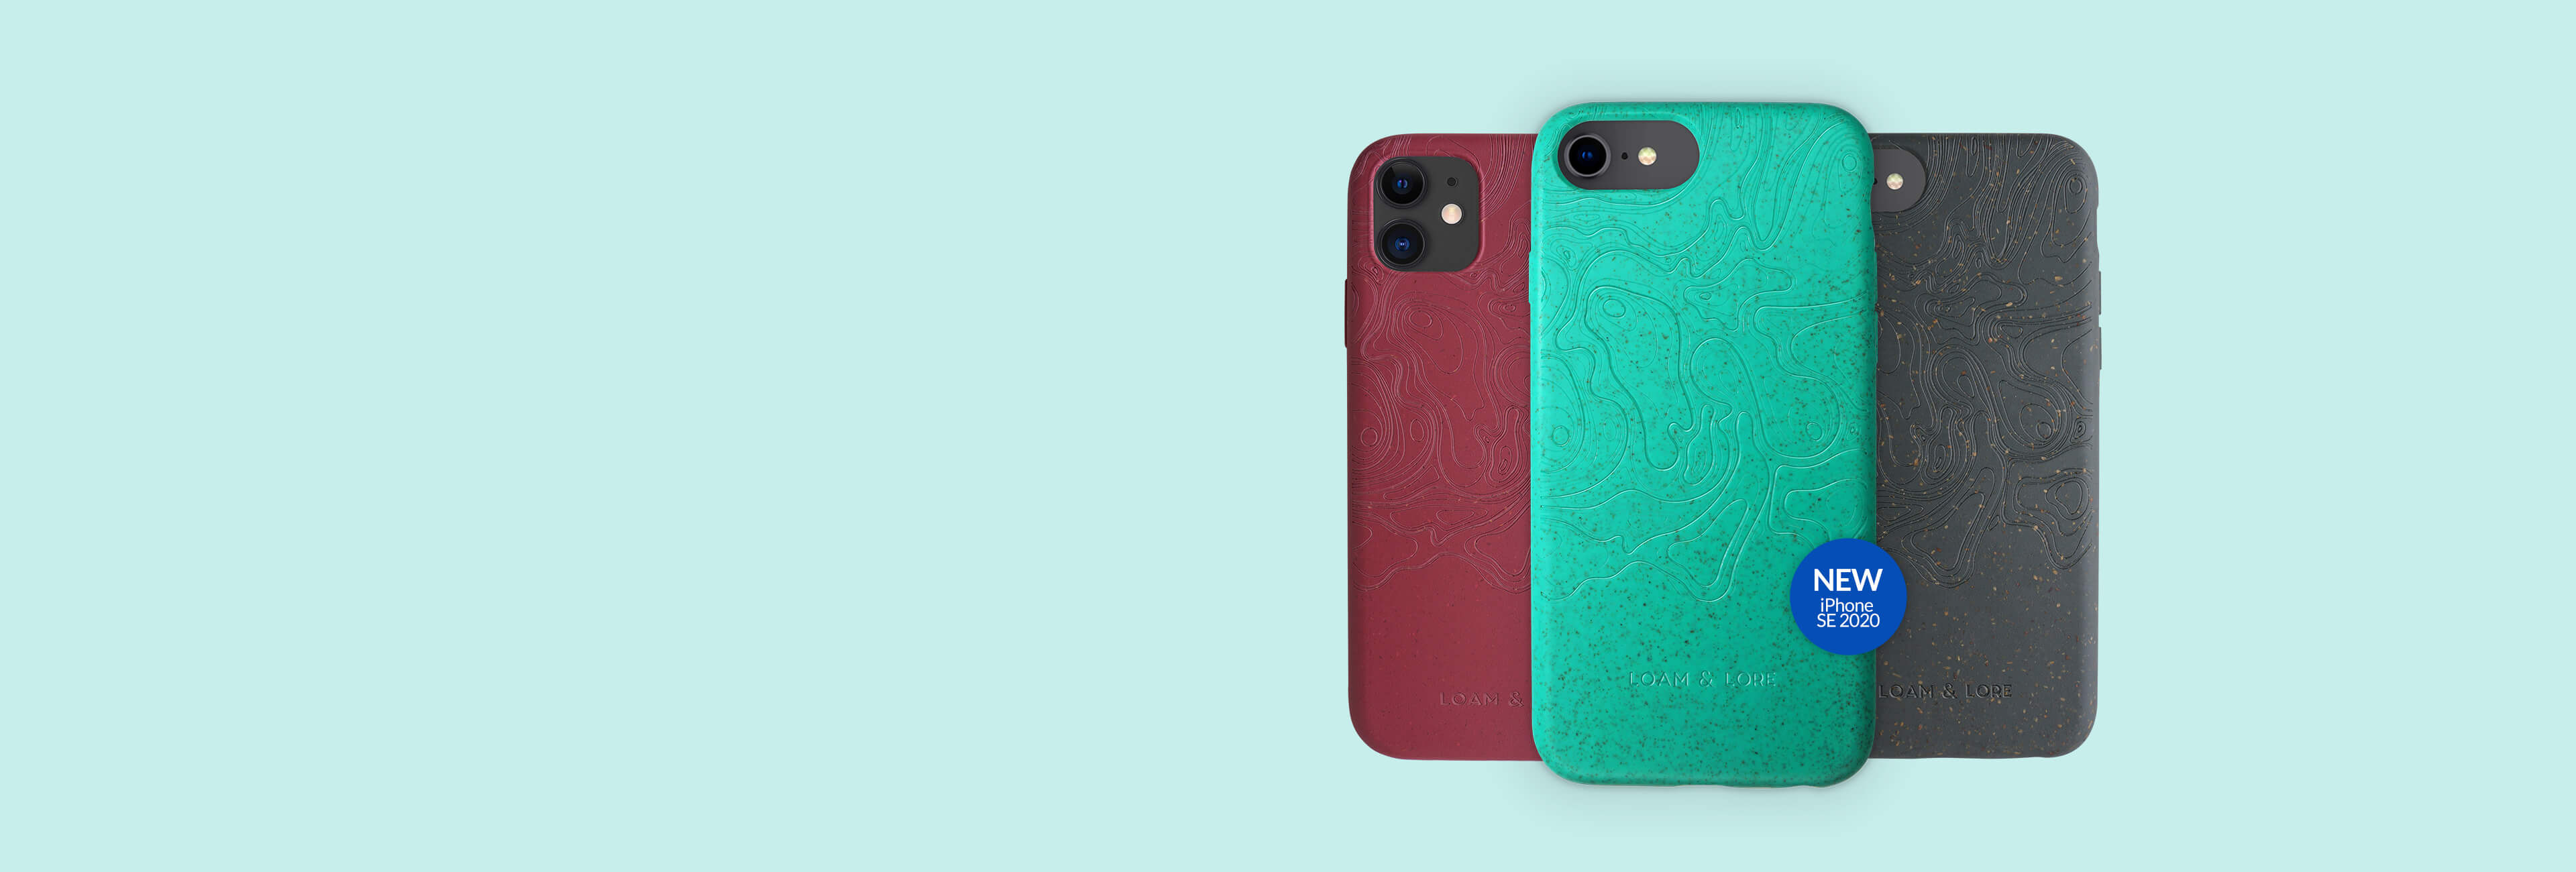 Compostable iphone cases from Loam & Lore